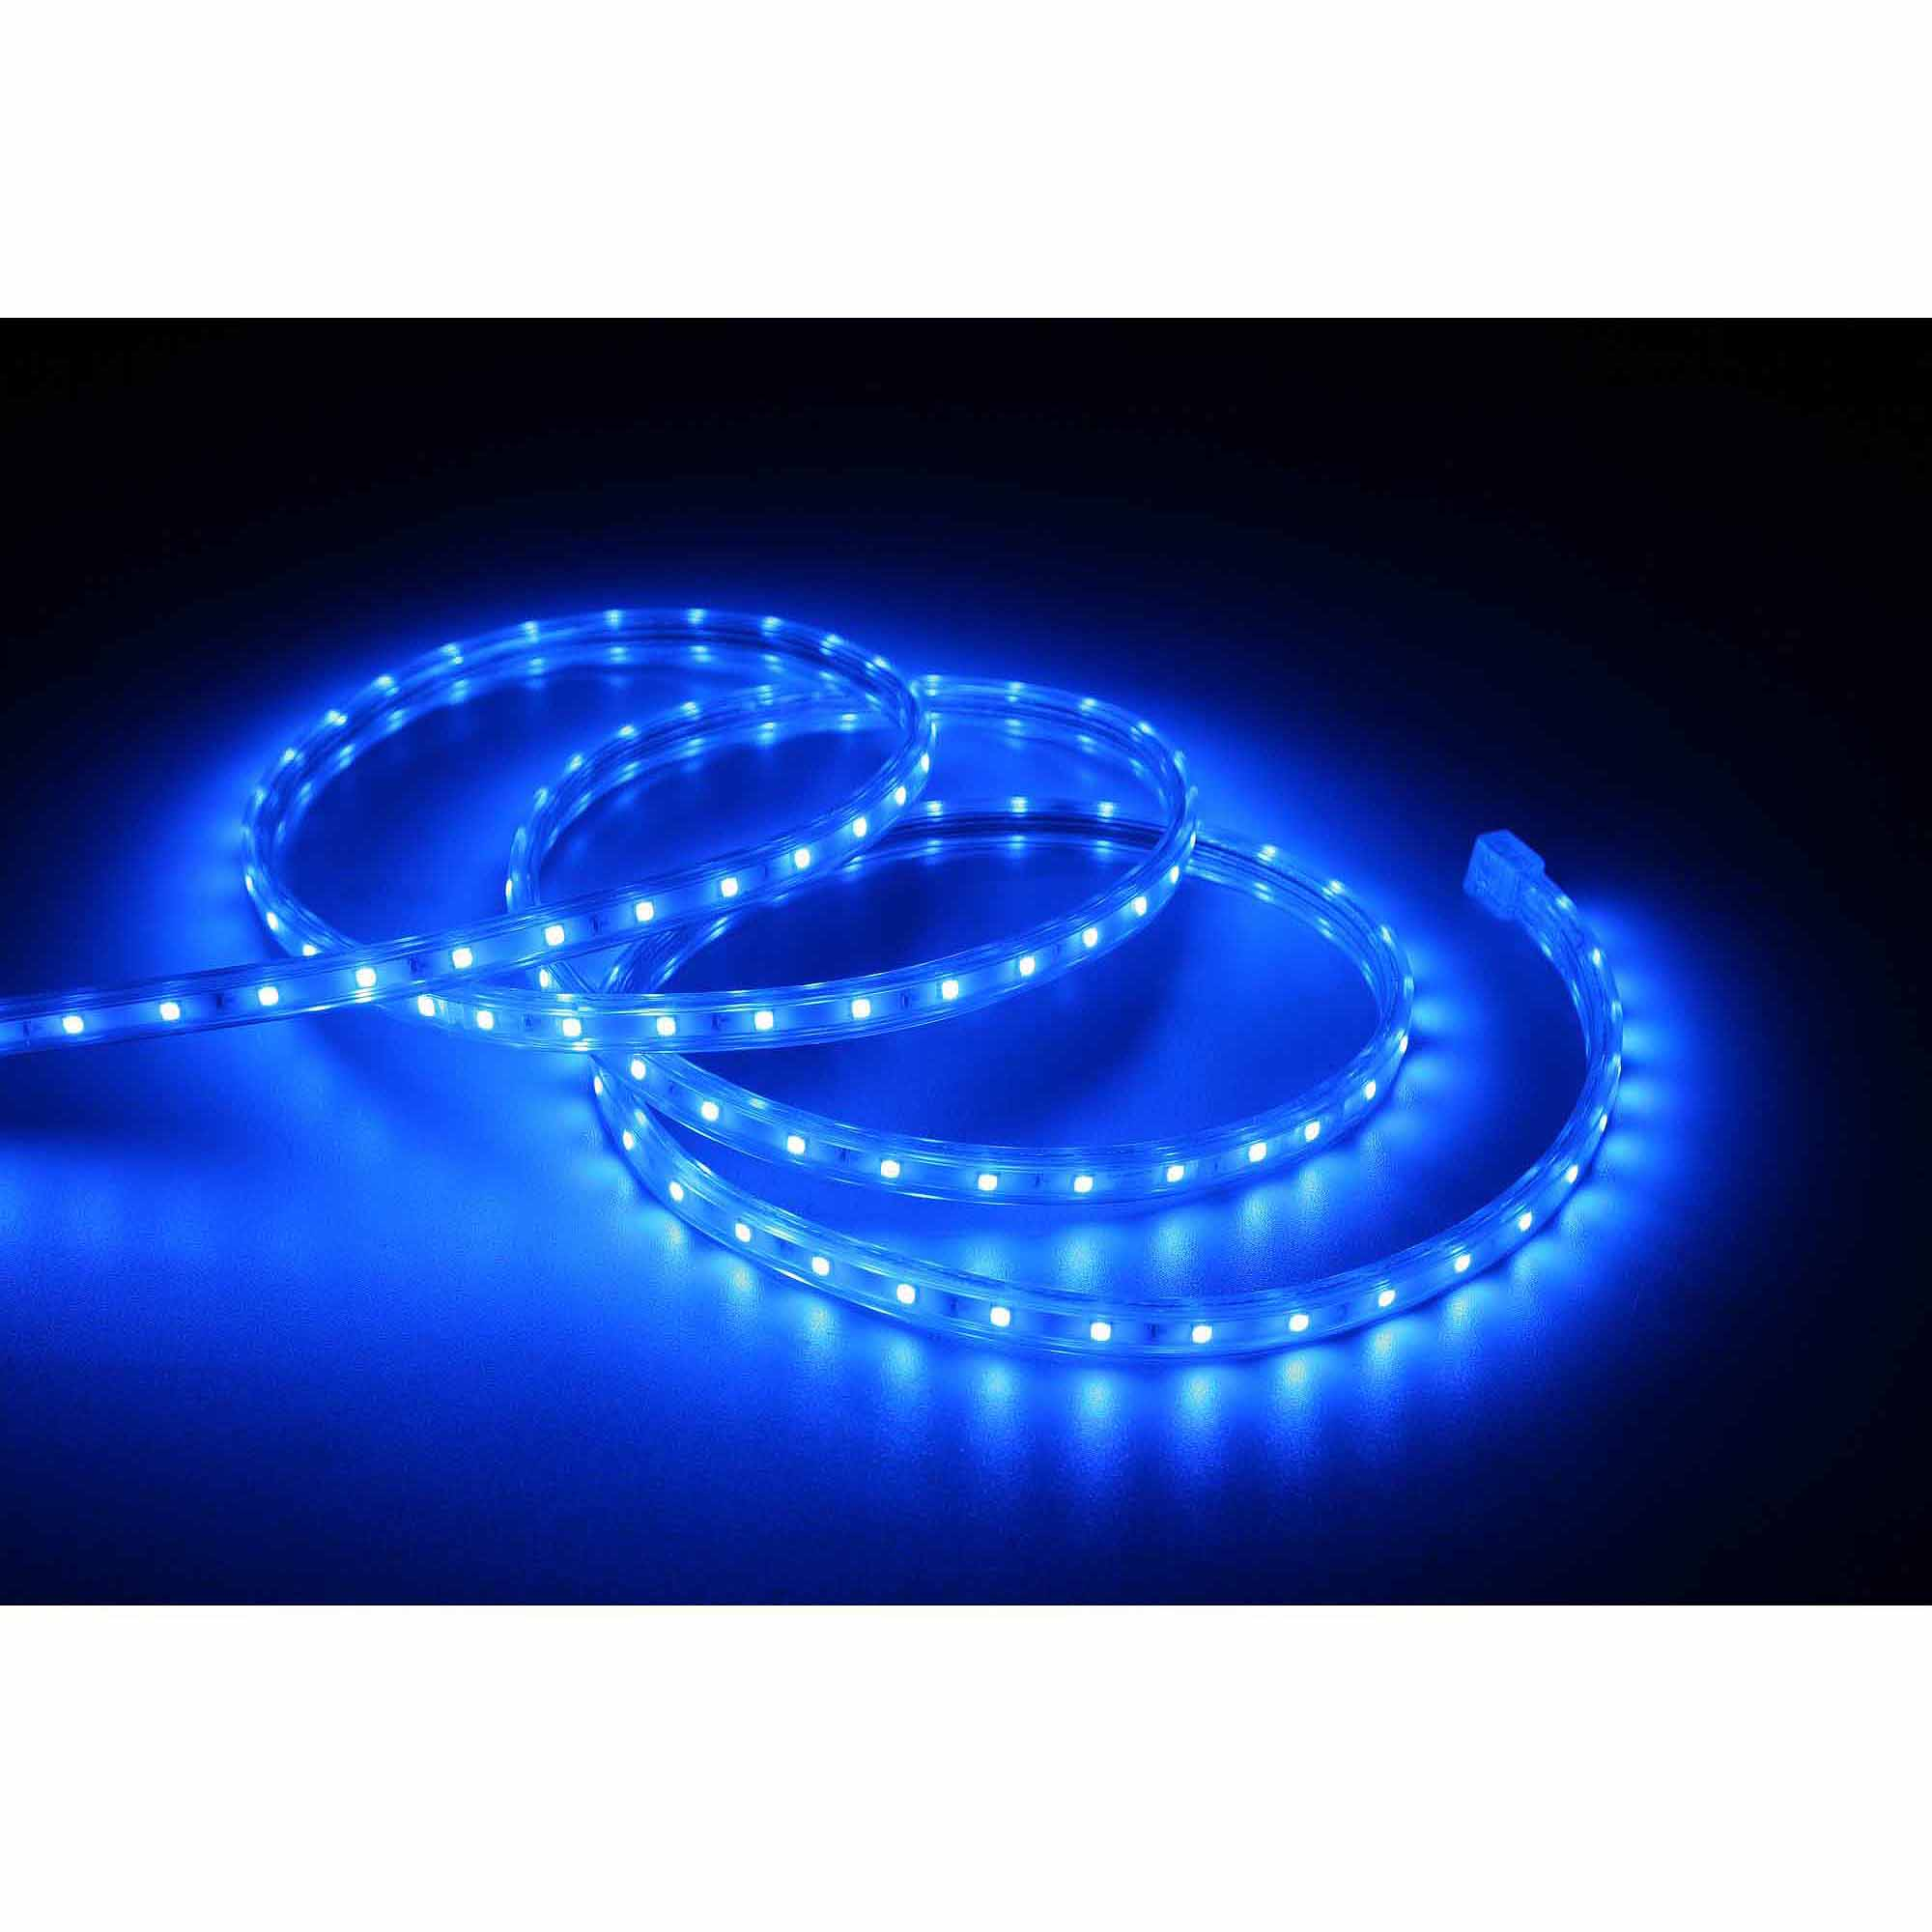 Led Lights At Walmart Holiday Time 19 6 Led Blue Rope Light 240 Count